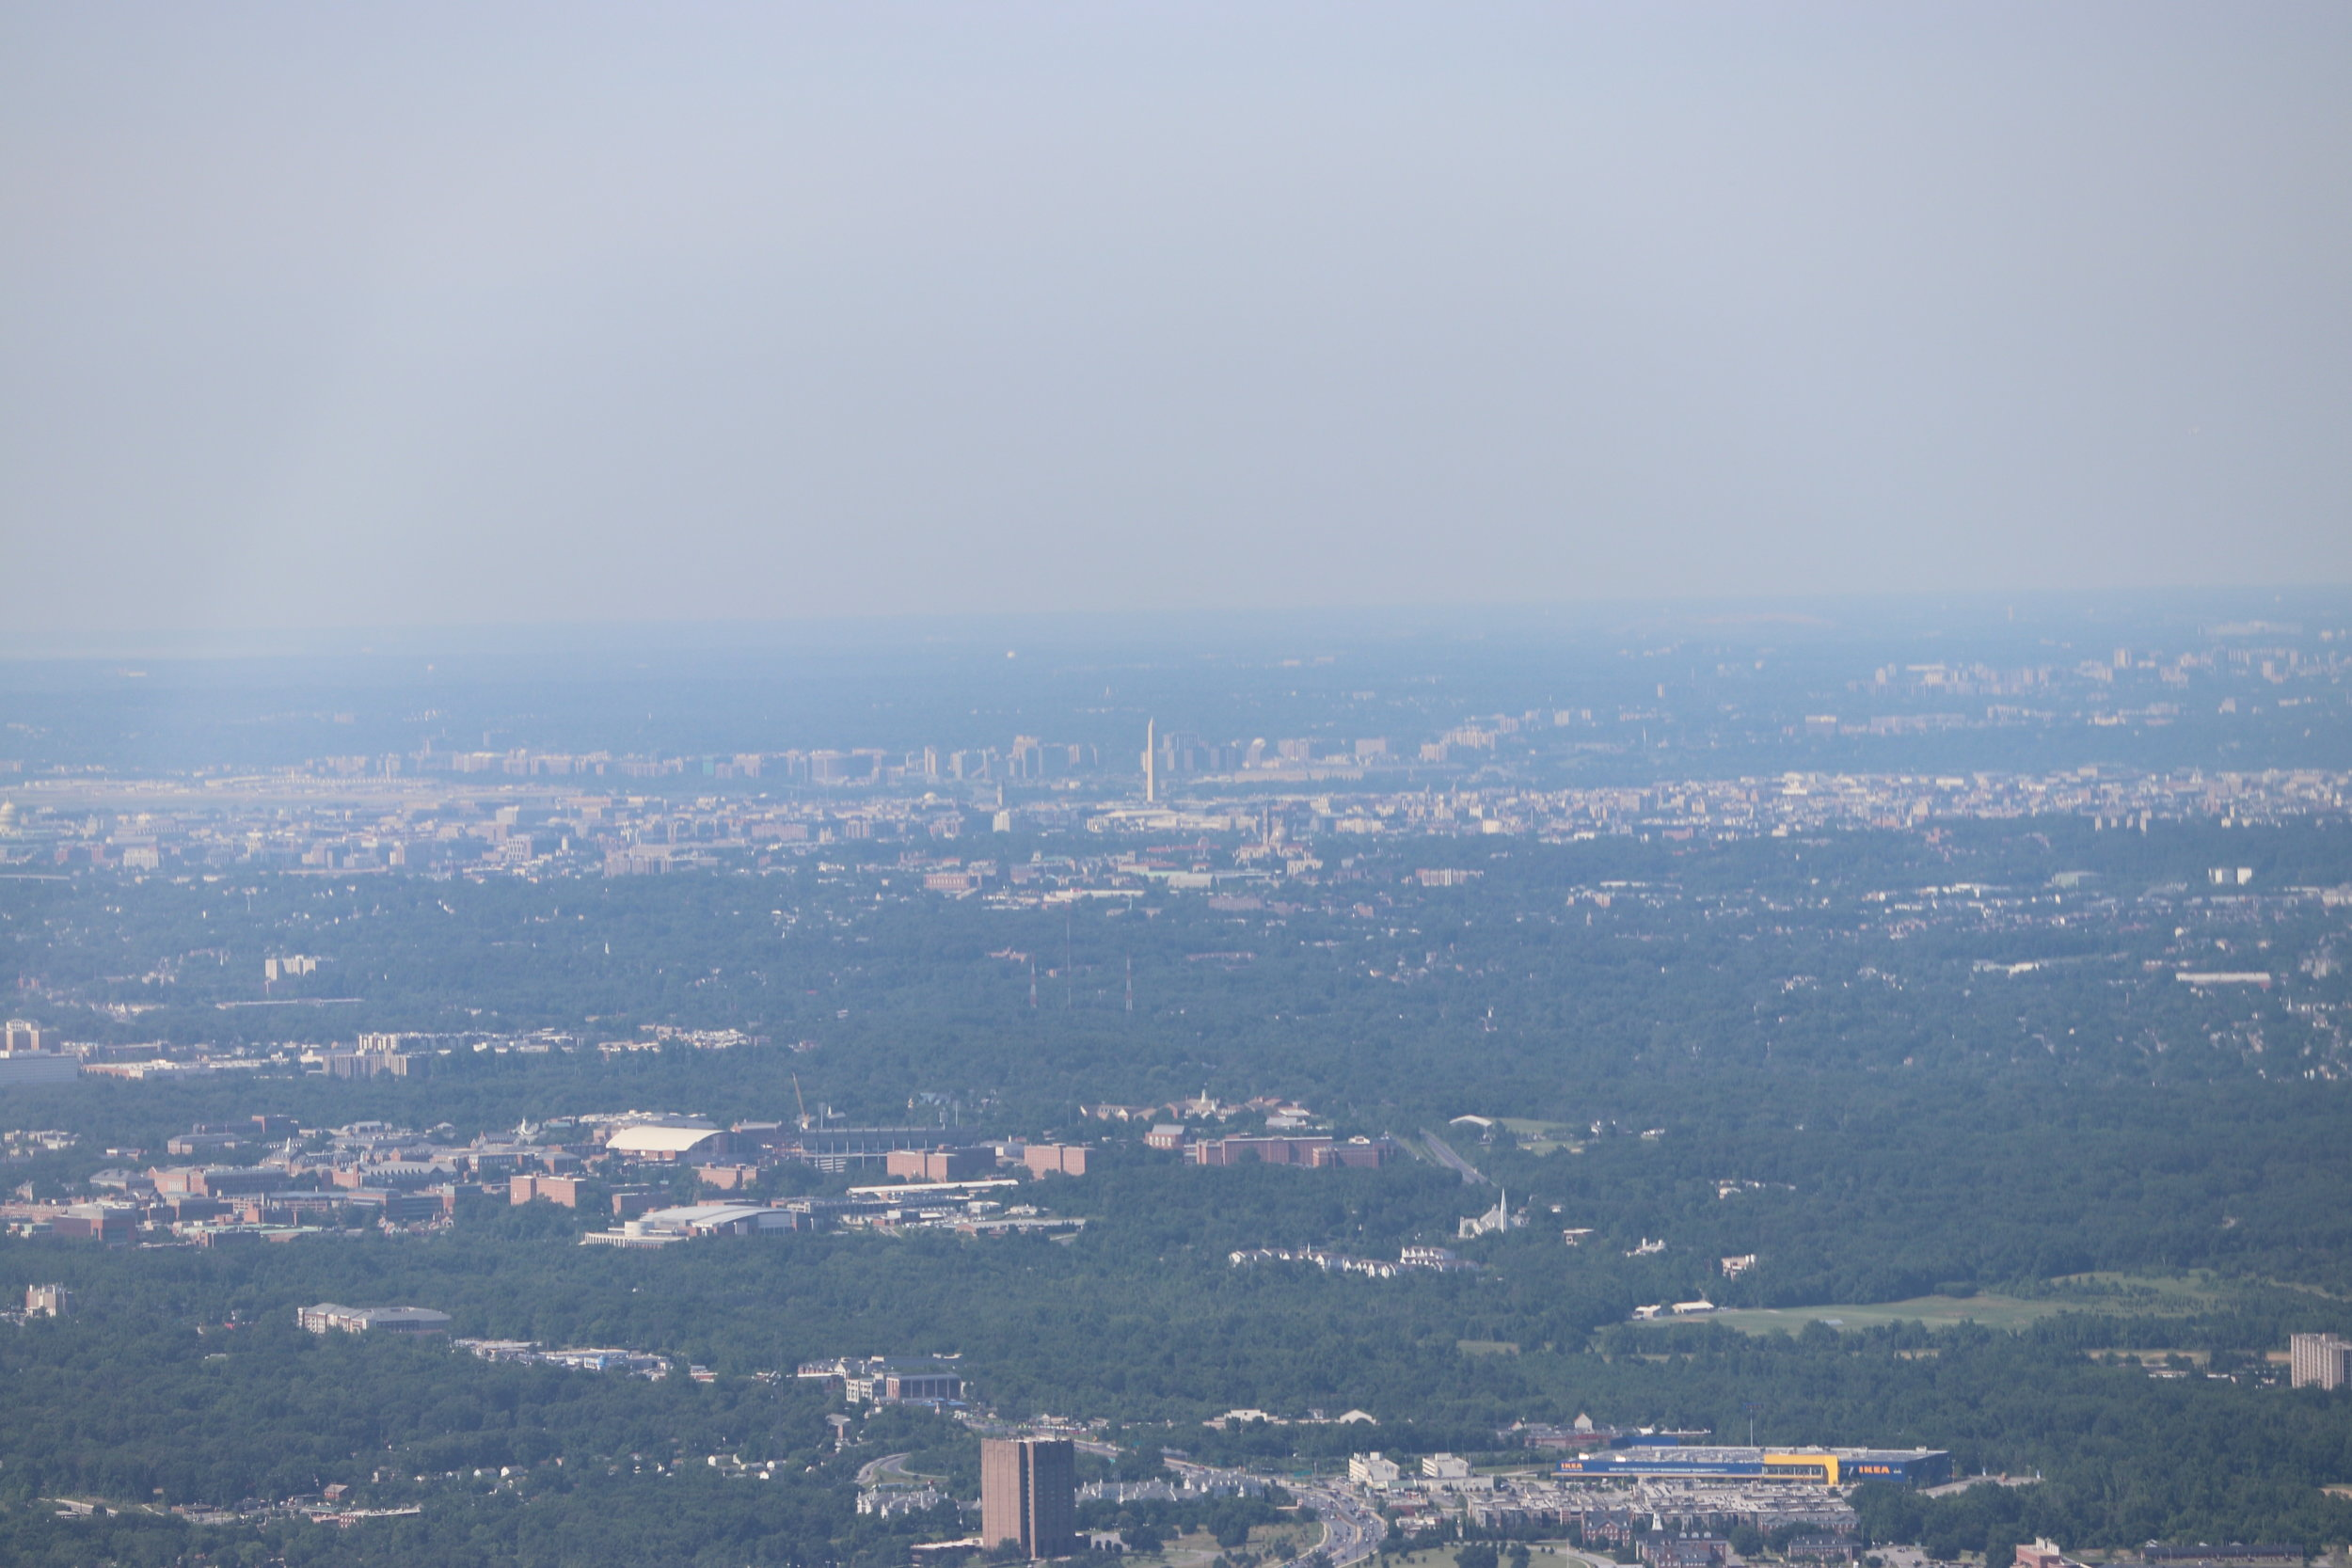 The University of Maryland in the foreground with the Washington Monument in the background.